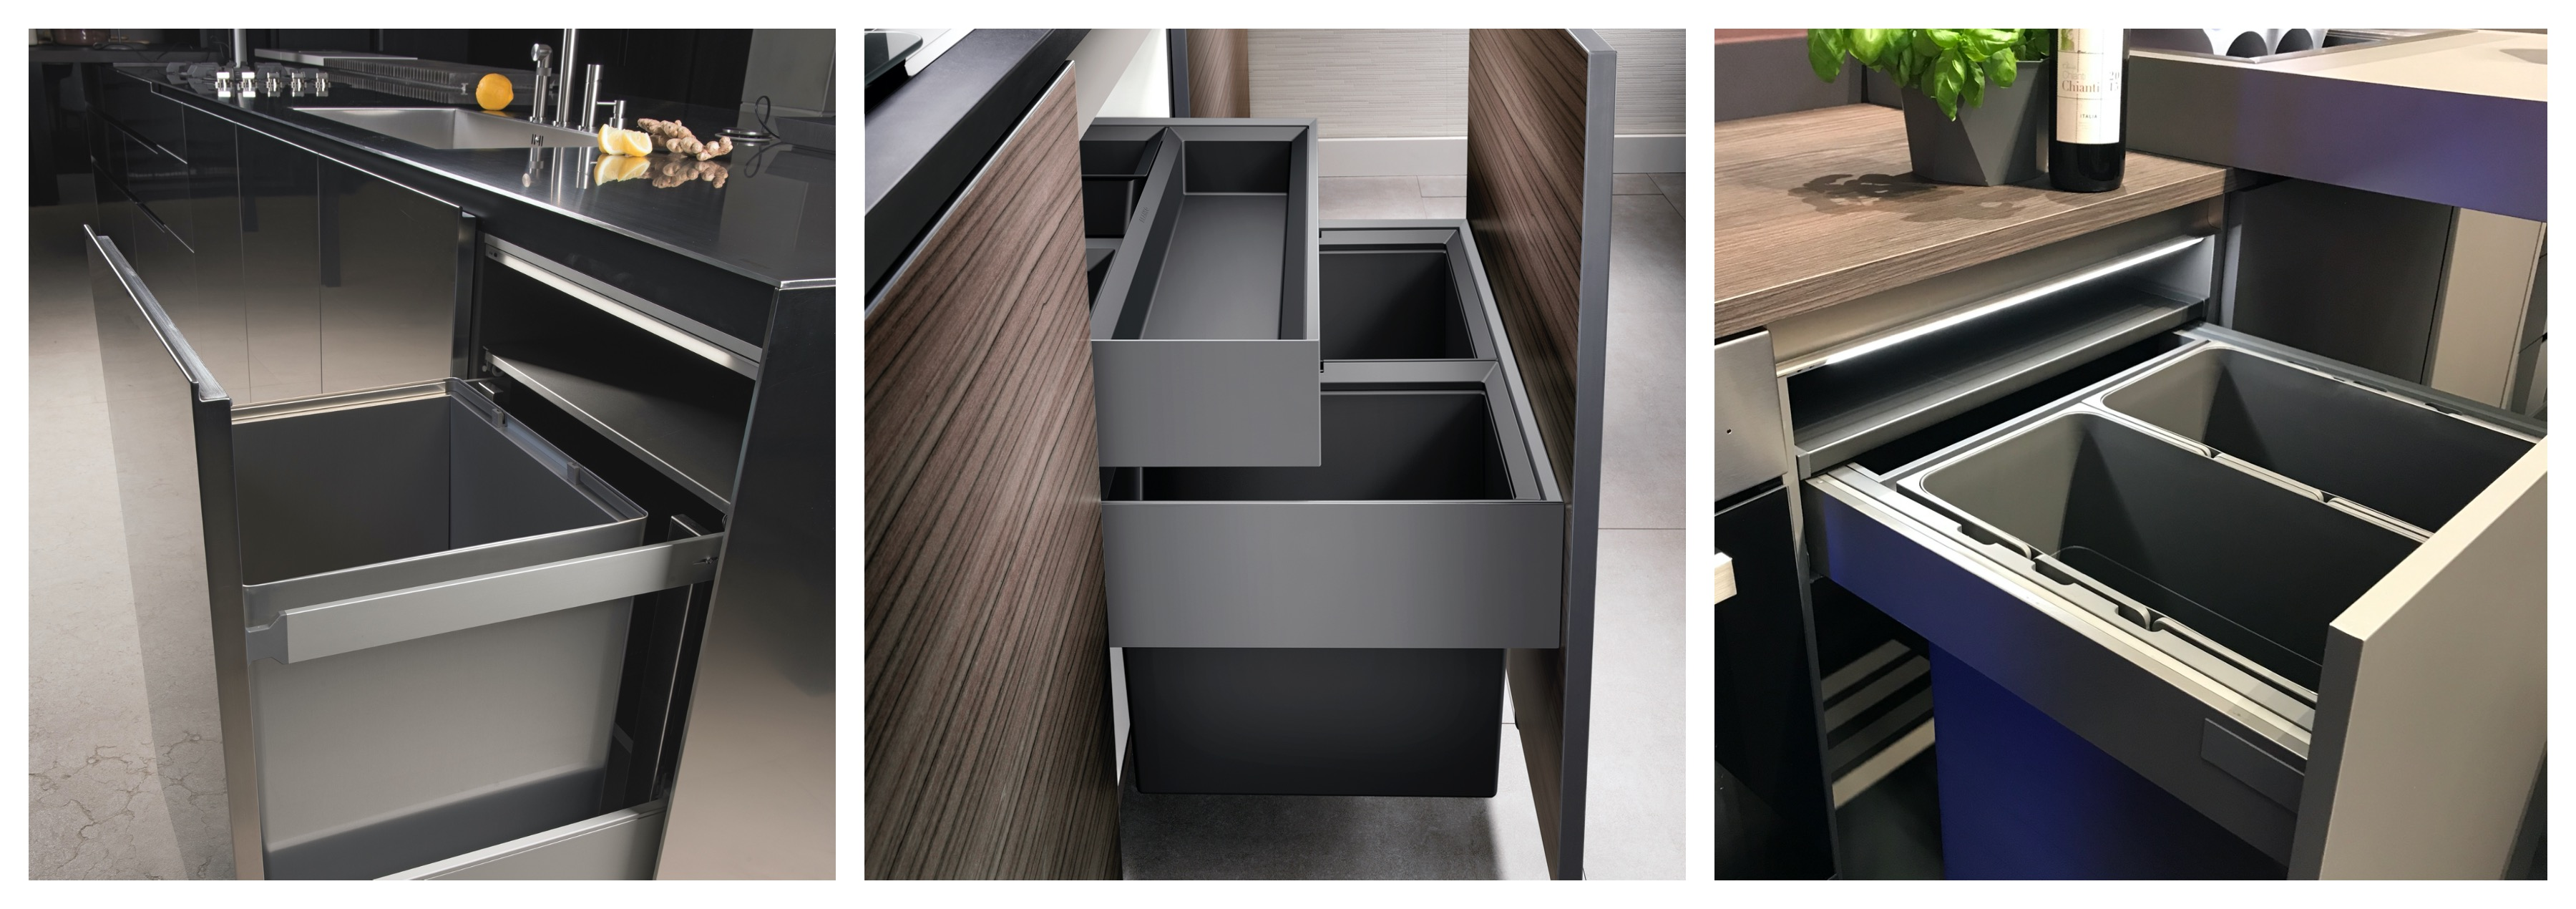 Spring 2020: Best built-in bins for 600mm cabinets